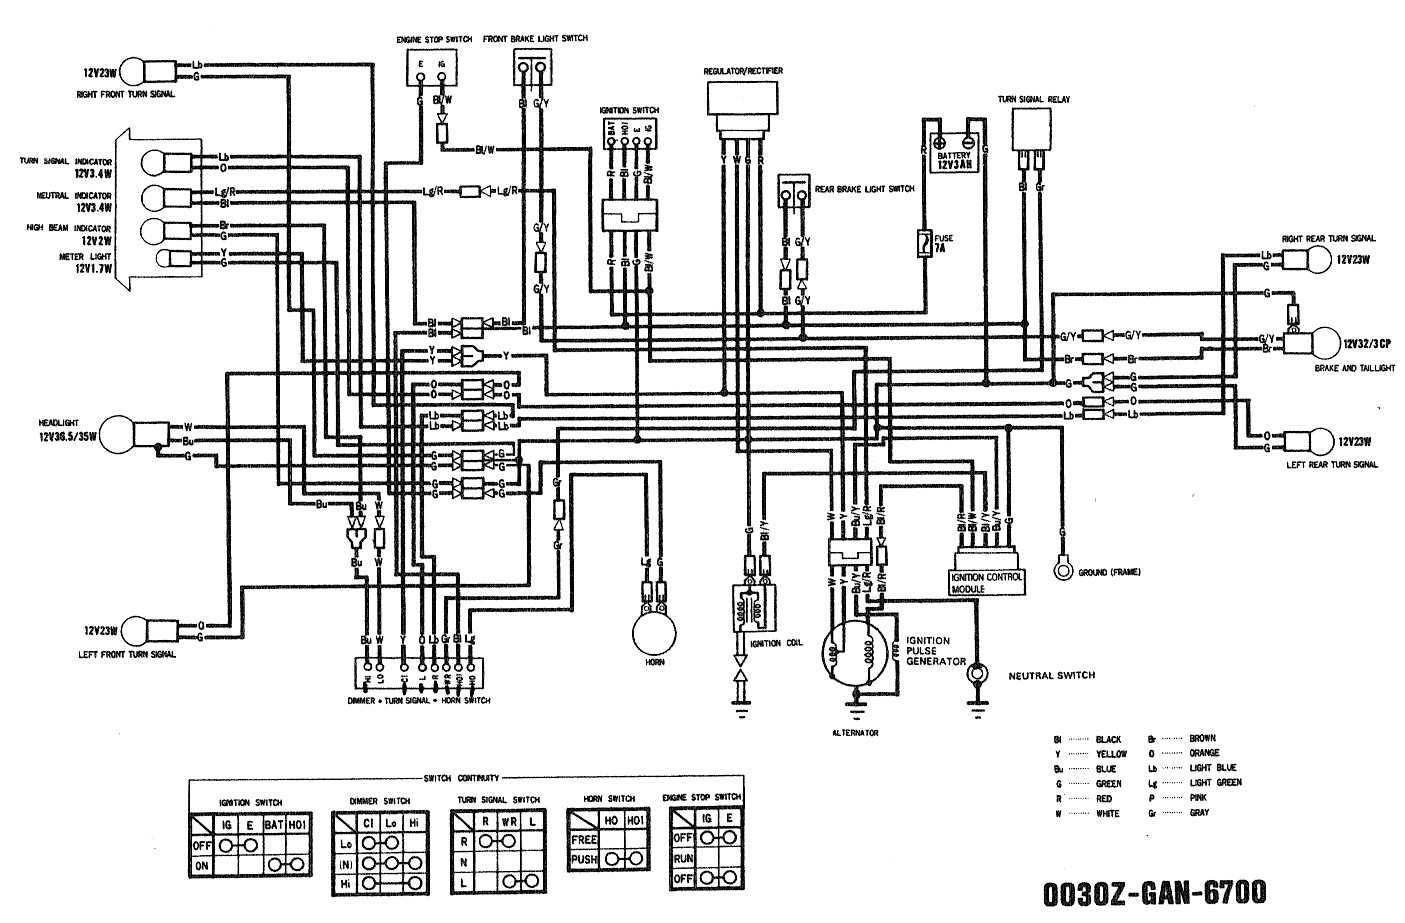 Outstanding 1980 honda c70 passport wiring diagram ideas best sophisticated honda c70 gbo wiring diagram contemporary best image asfbconference2016 Gallery